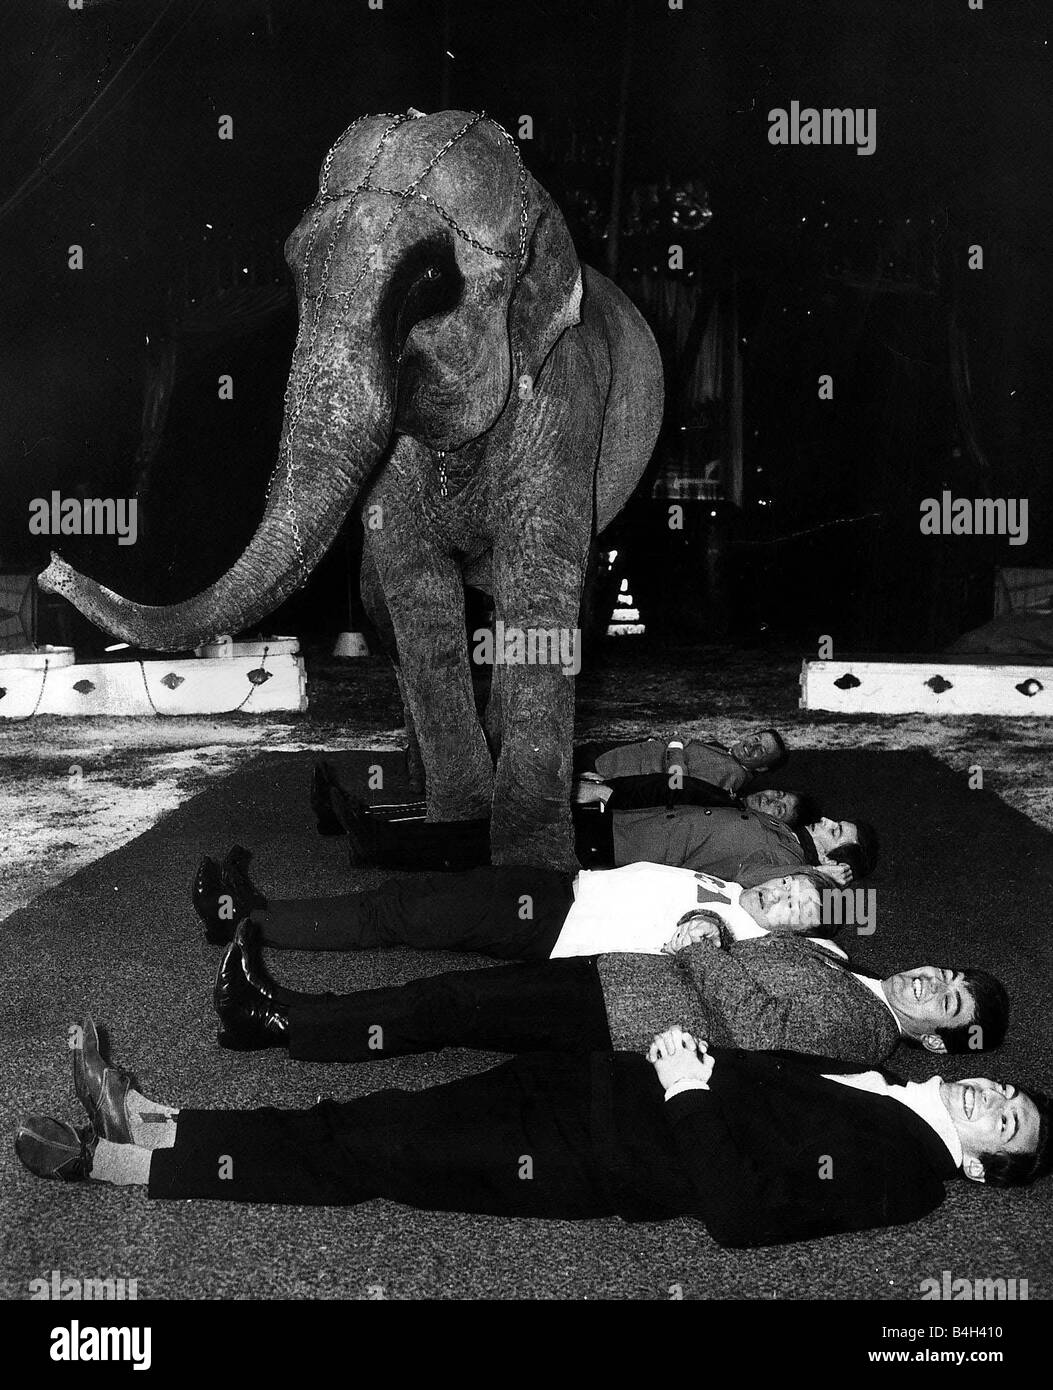 752a11977dfb Circus Animal Elephant November 1967 Burma the Elepahnt stepping over BBC  Radio 1 DJs are pictured